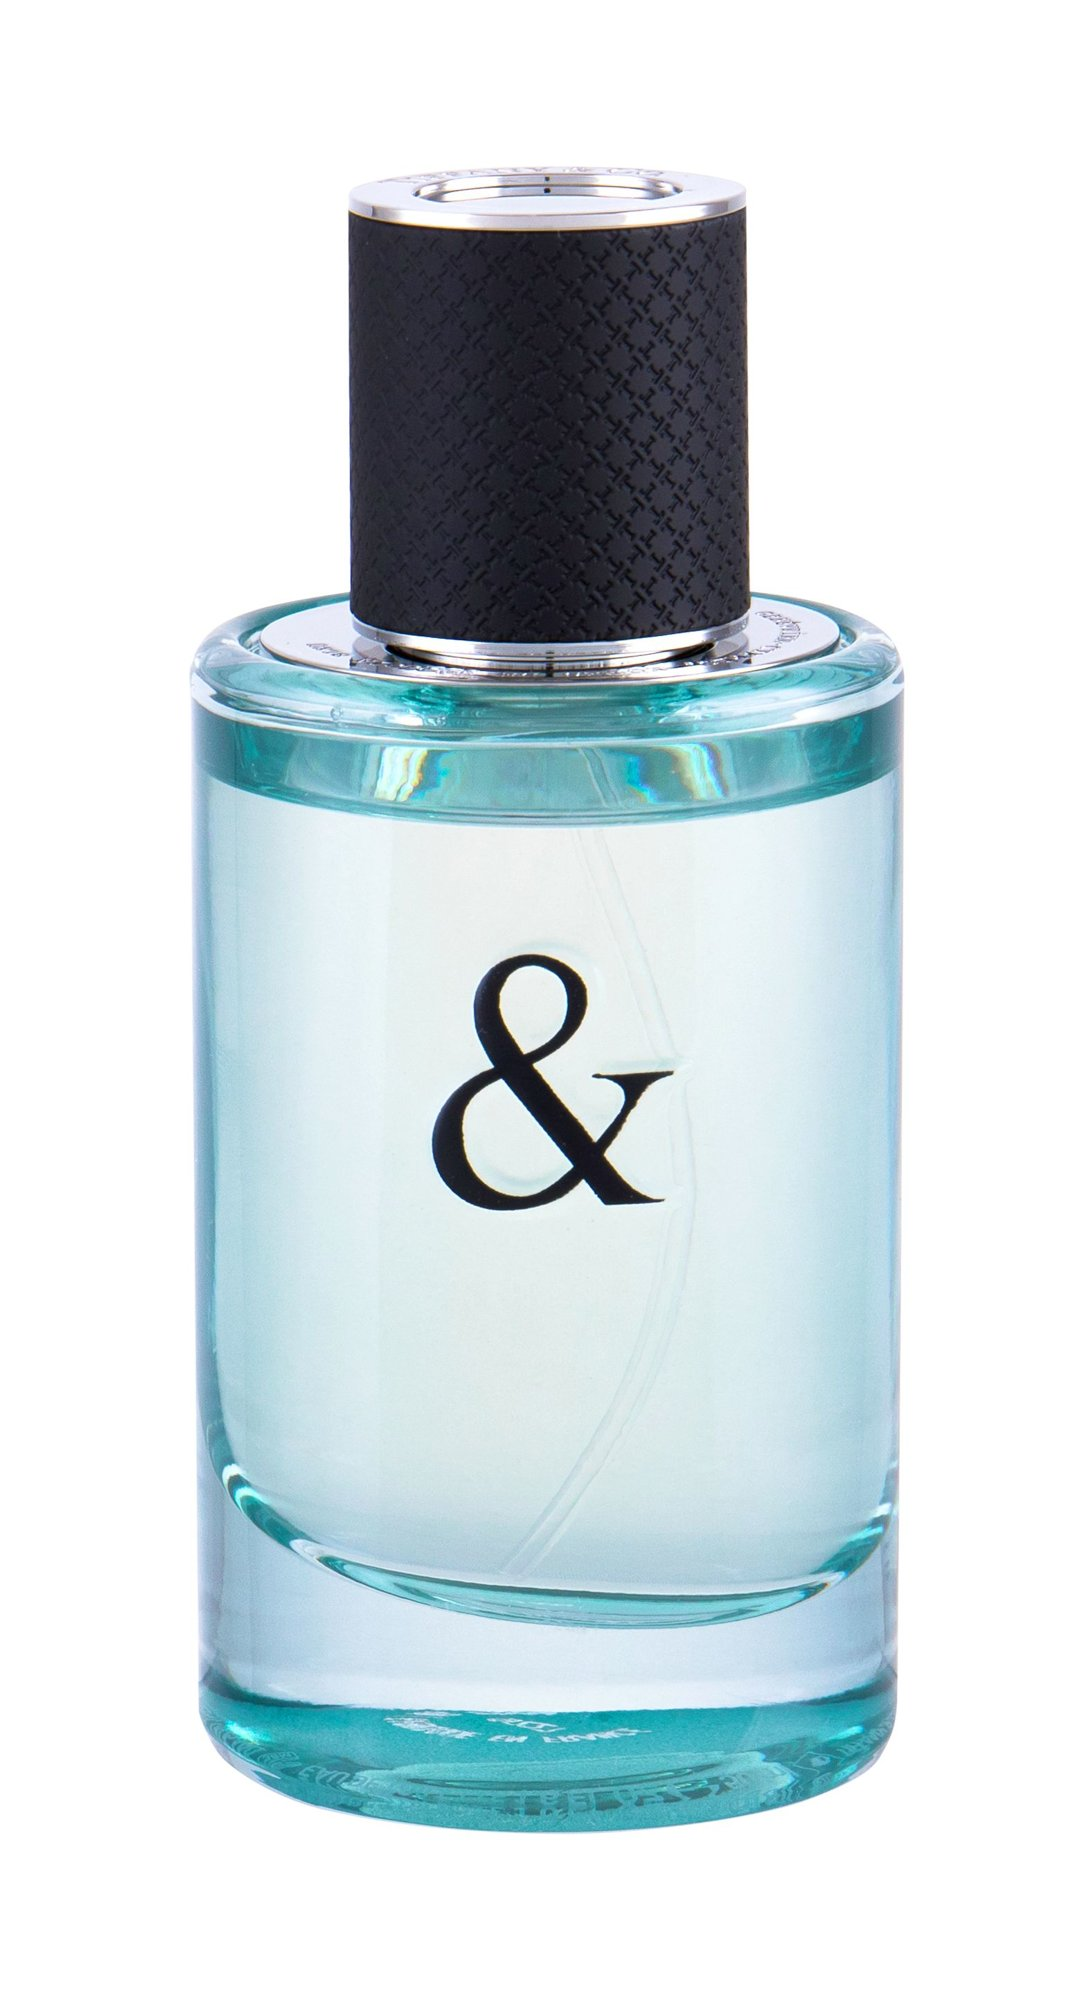 Tiffany & Co. Tiffany & Love Eau de Toilette 50ml